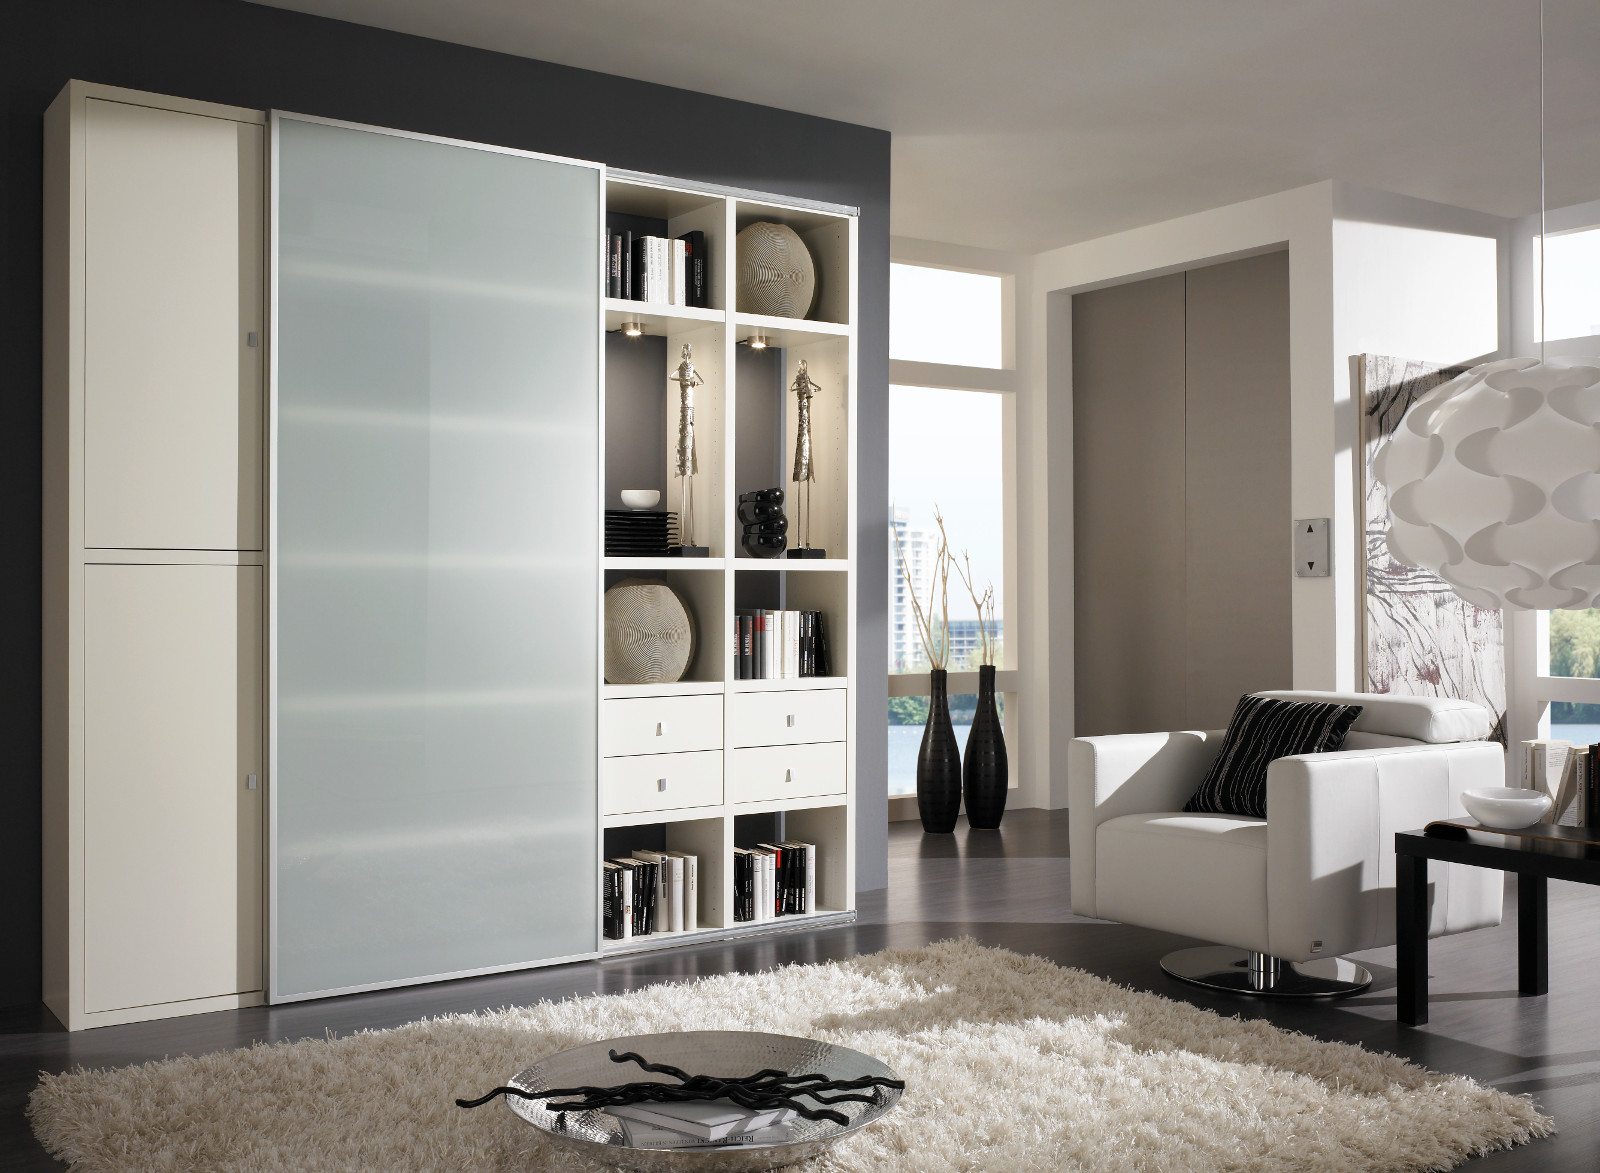 schiebet r wei glas. Black Bedroom Furniture Sets. Home Design Ideas